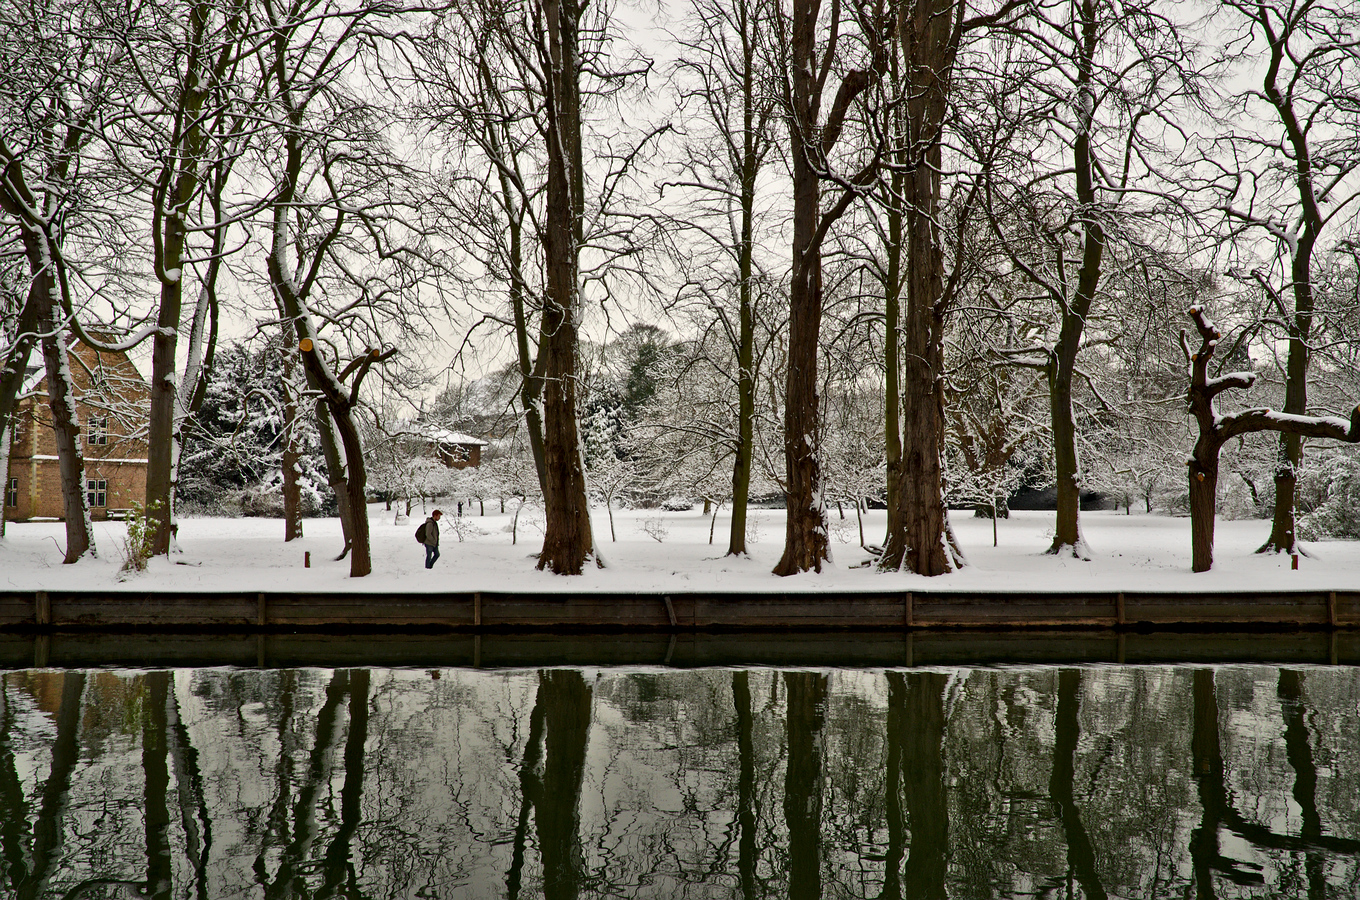 along river cam cambridge snow trees reflection water solitary figure